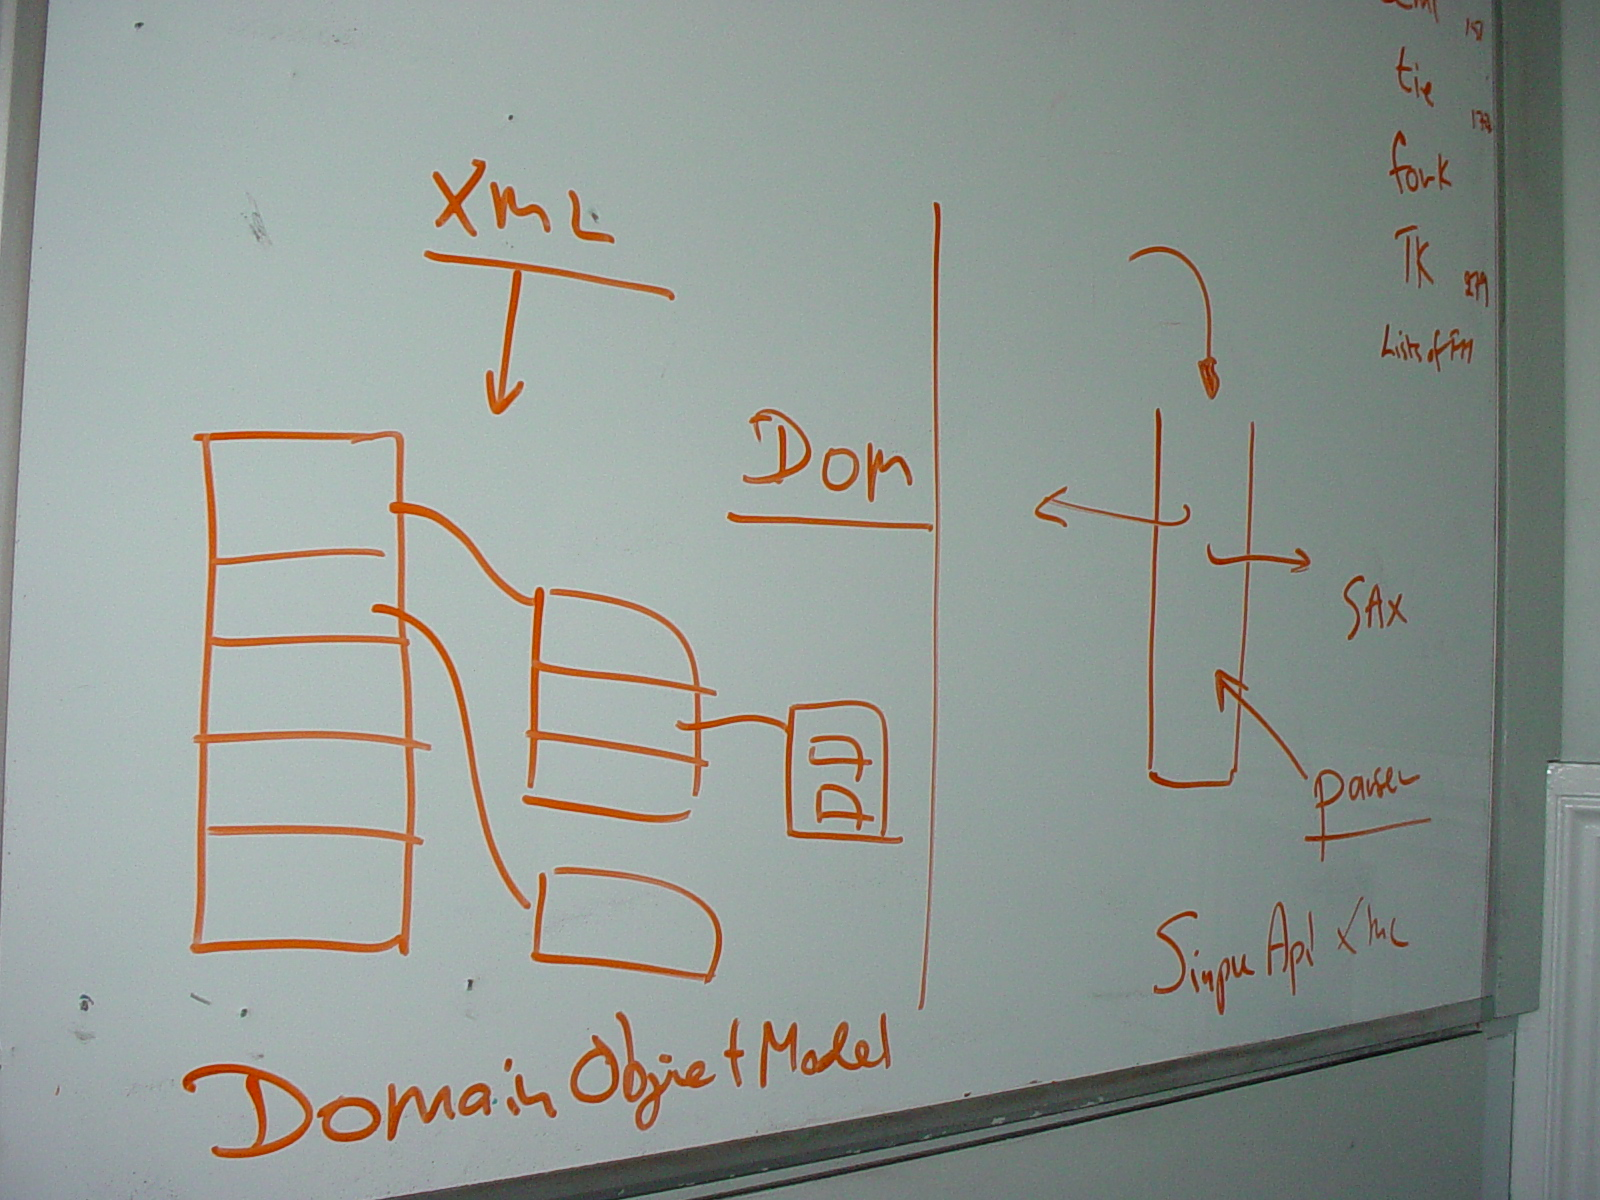 The DOM and SAX models for handling XML data